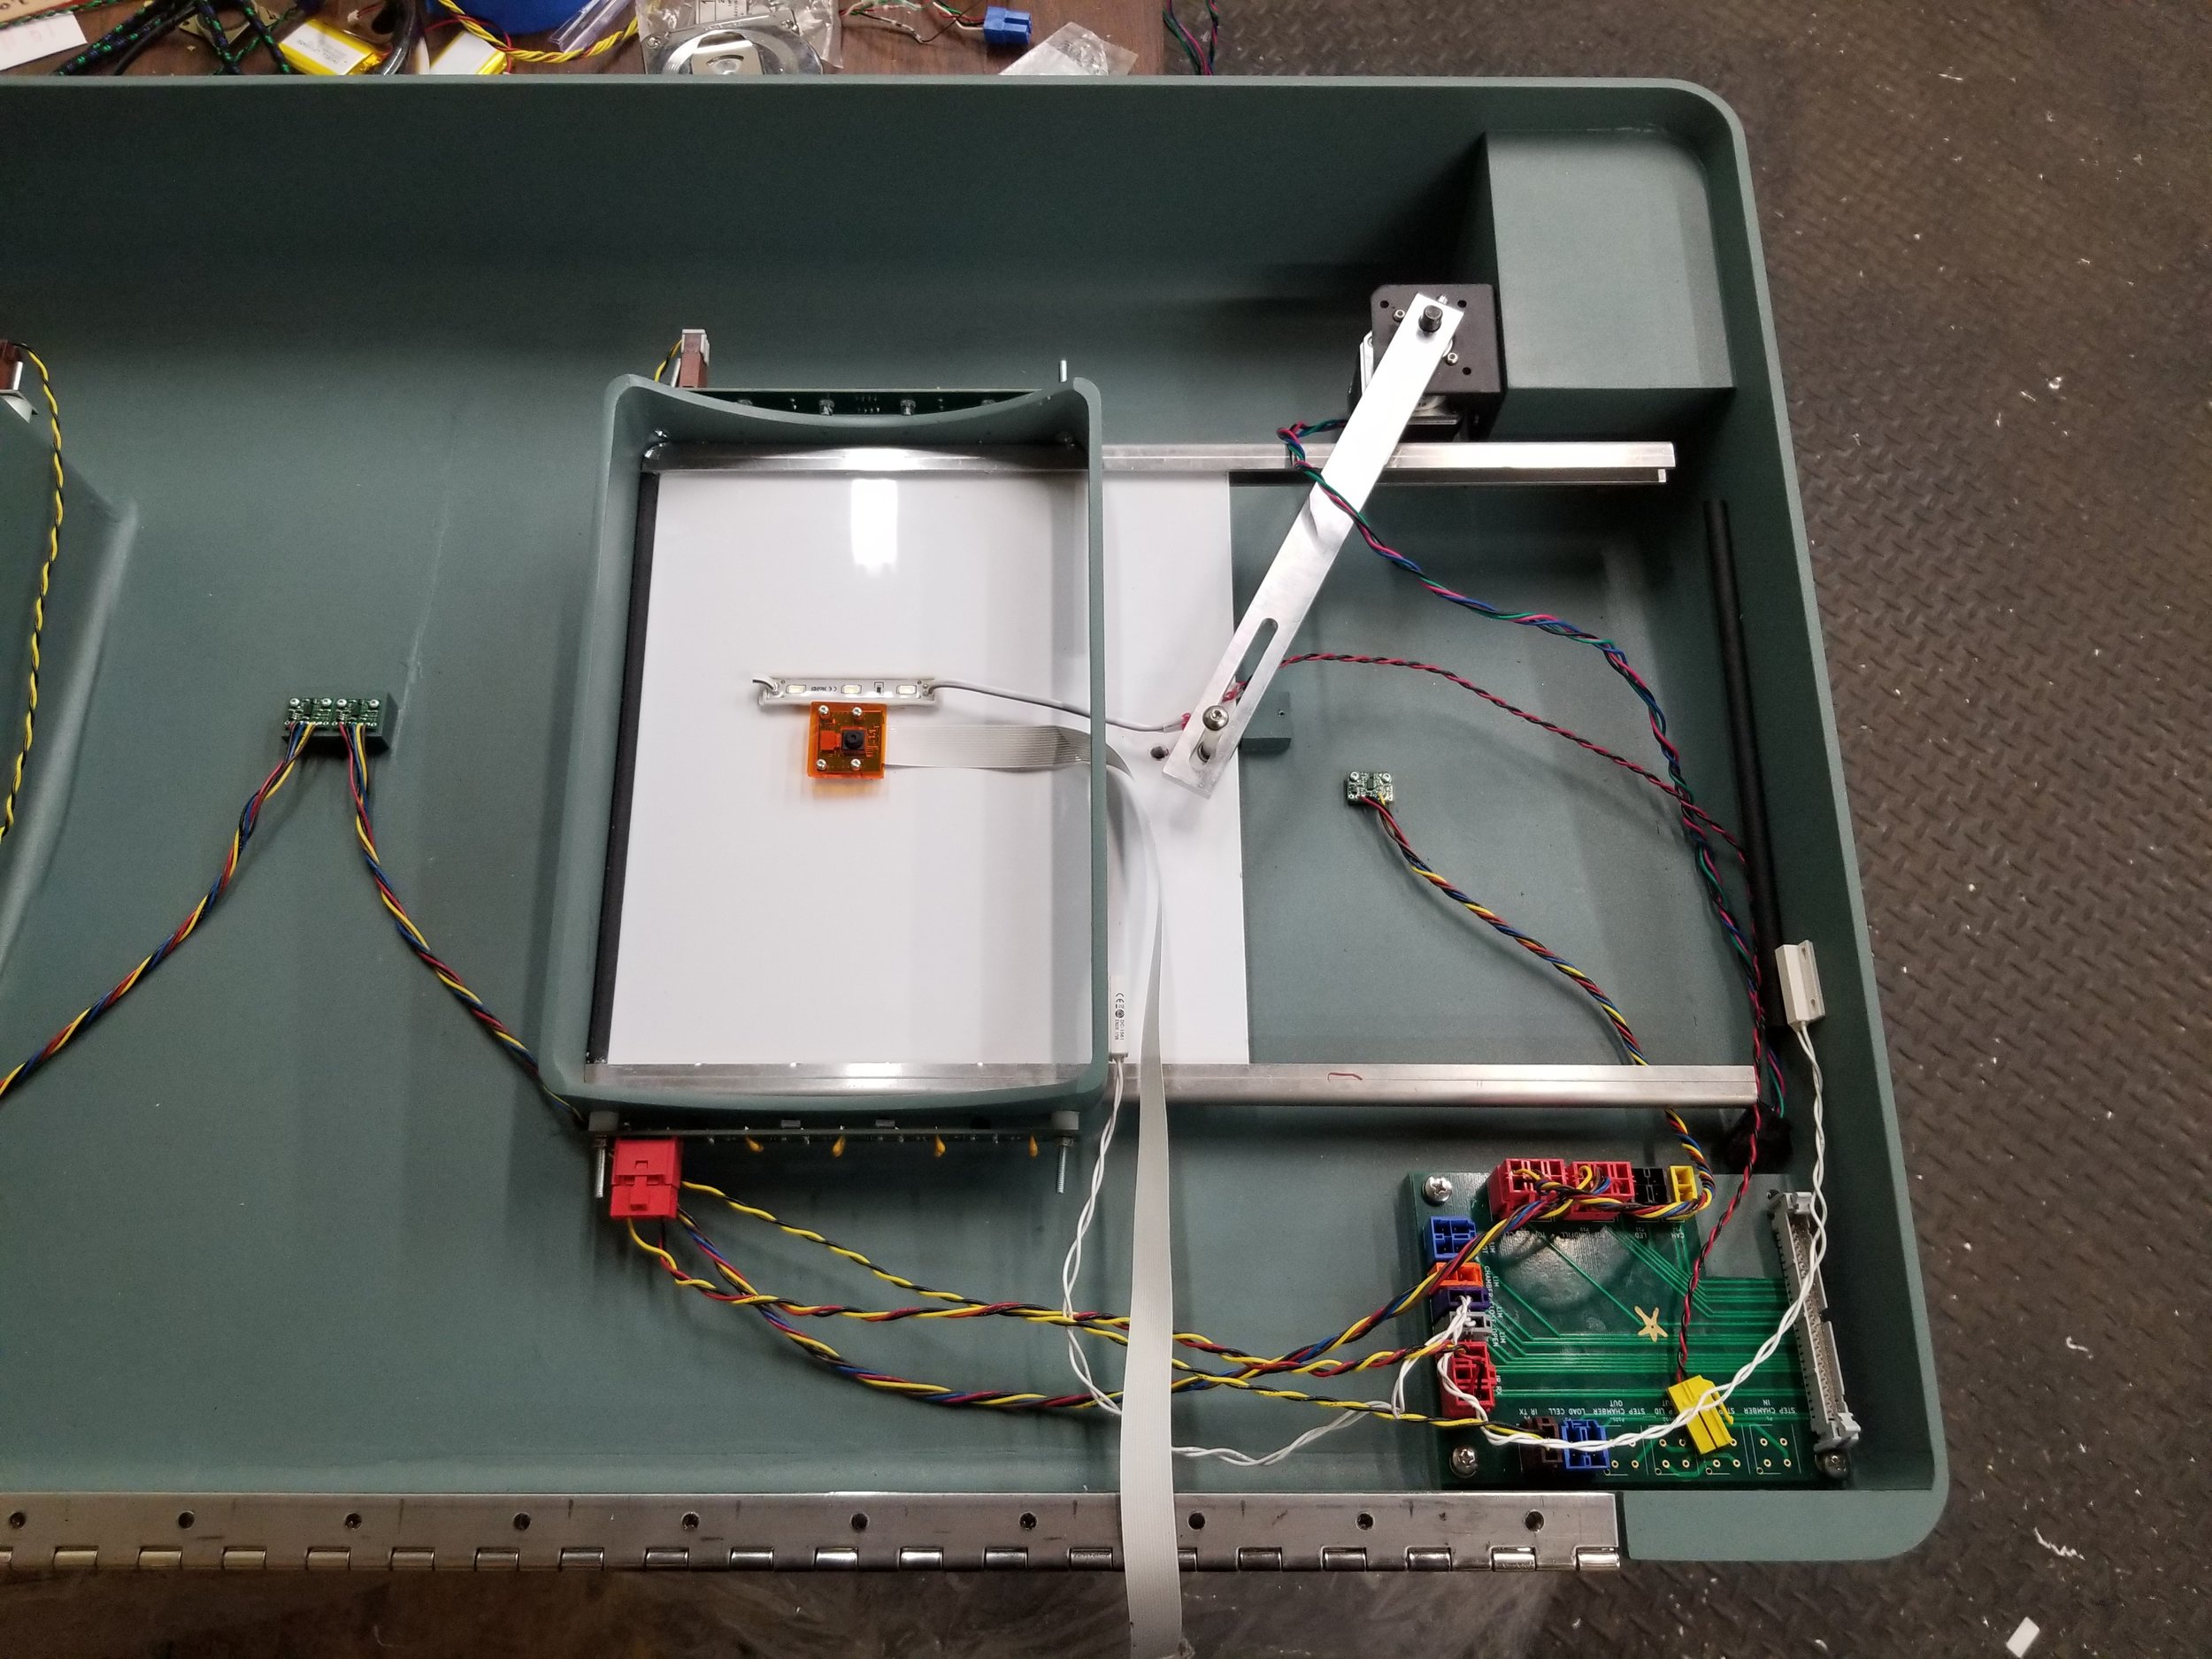 Functionality - Item disposal is detected by an array of IR transmitters. After detection, the lid is closed by a stepper motor driven pin-slot mechanism. The item is weighed by a 'tray' beneath the actuating chamber while the item is illuminated and photographed The item is identified as either landfill waste or recycling and disposed of by a stepper motor and worm gearbox driven actuating chamber. Time-of-flight sensors located in the top measure the fullness of the bins. Data from the unit is relayed to a dashboard in real-time, which can be accessed by customers visually analyze data collected by the TrashBots.The electronics in the top plug into a breakout board making the top modular, easier to maintain, and quicker to assemble. The breakout board is connected by a ribbon cable to a primary PCB located on the chassis of the TrashBot.The videos below show the functionality and user flow of the product.